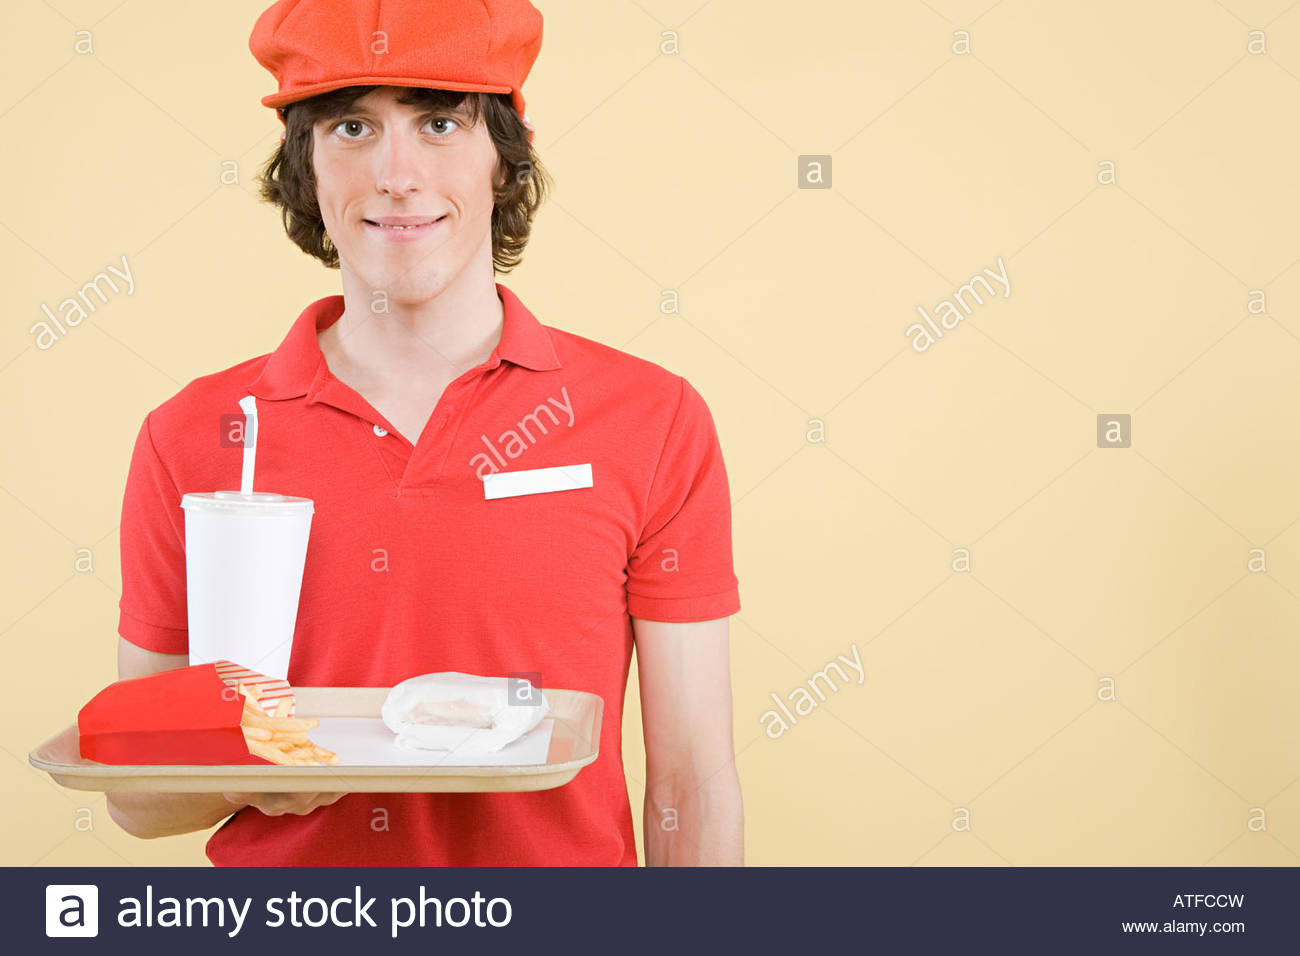 A fast food worker holding a tray of food - Stock Image